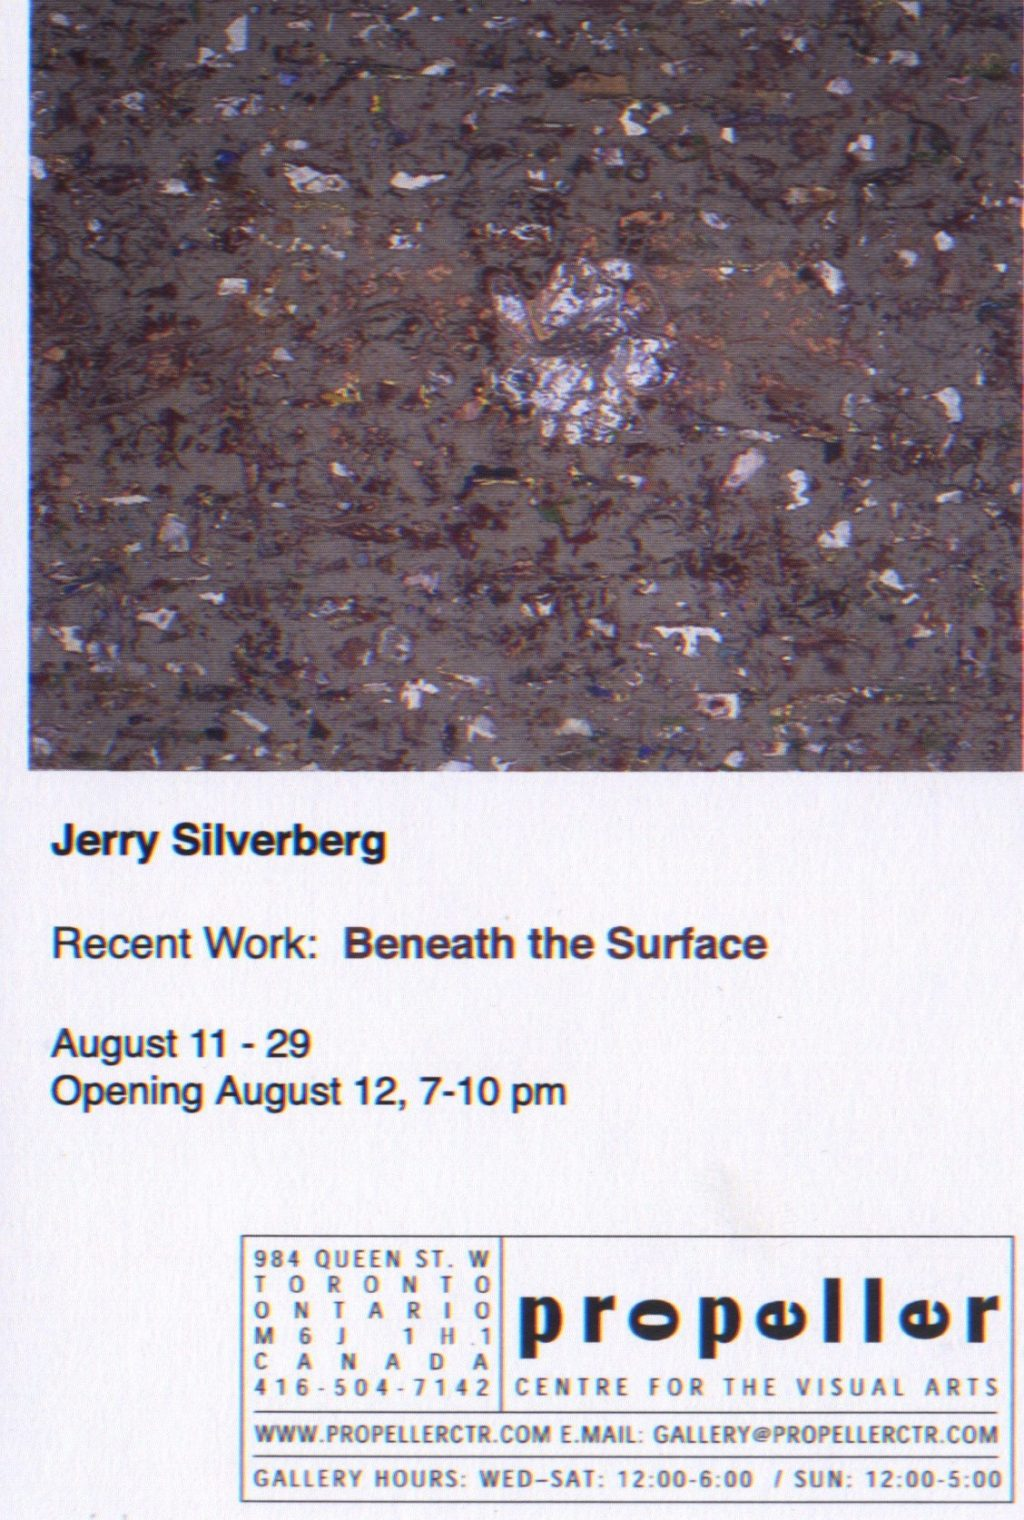 Jerry Silverberg Beneath the Surface